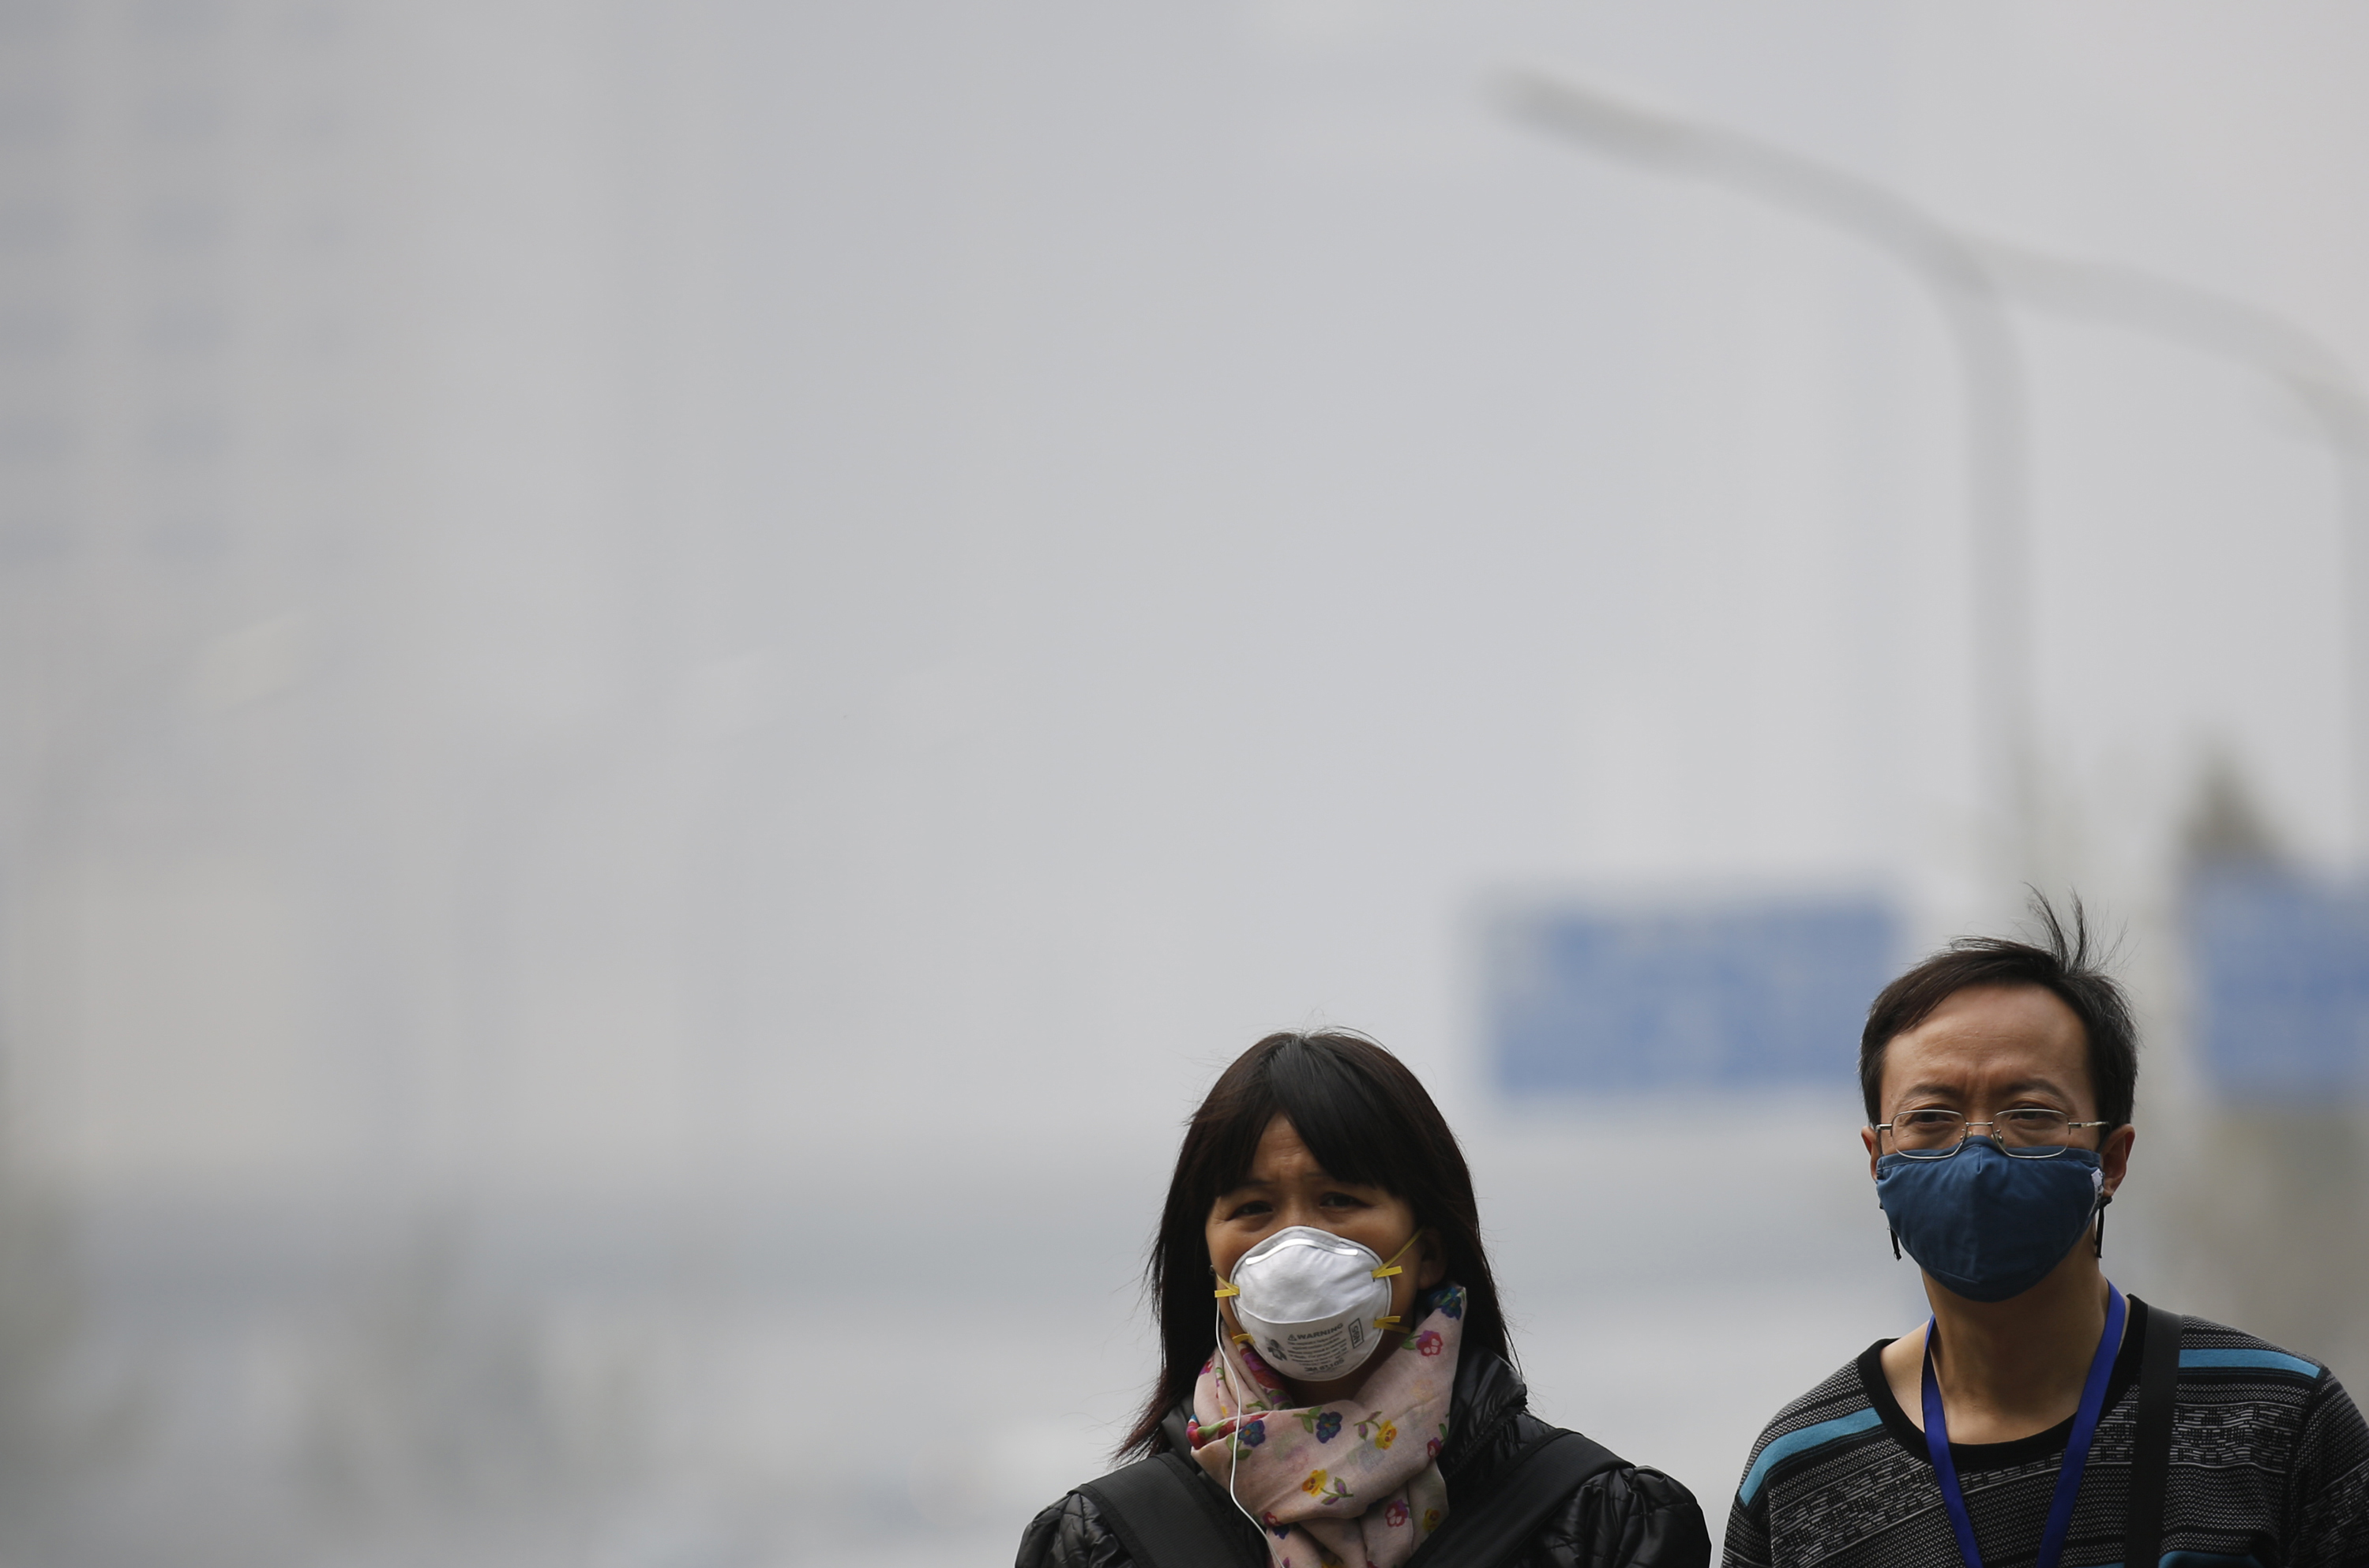 People wearing masks walk on a street amid heavy haze and smog in Beijing on Oct. 11, 2014